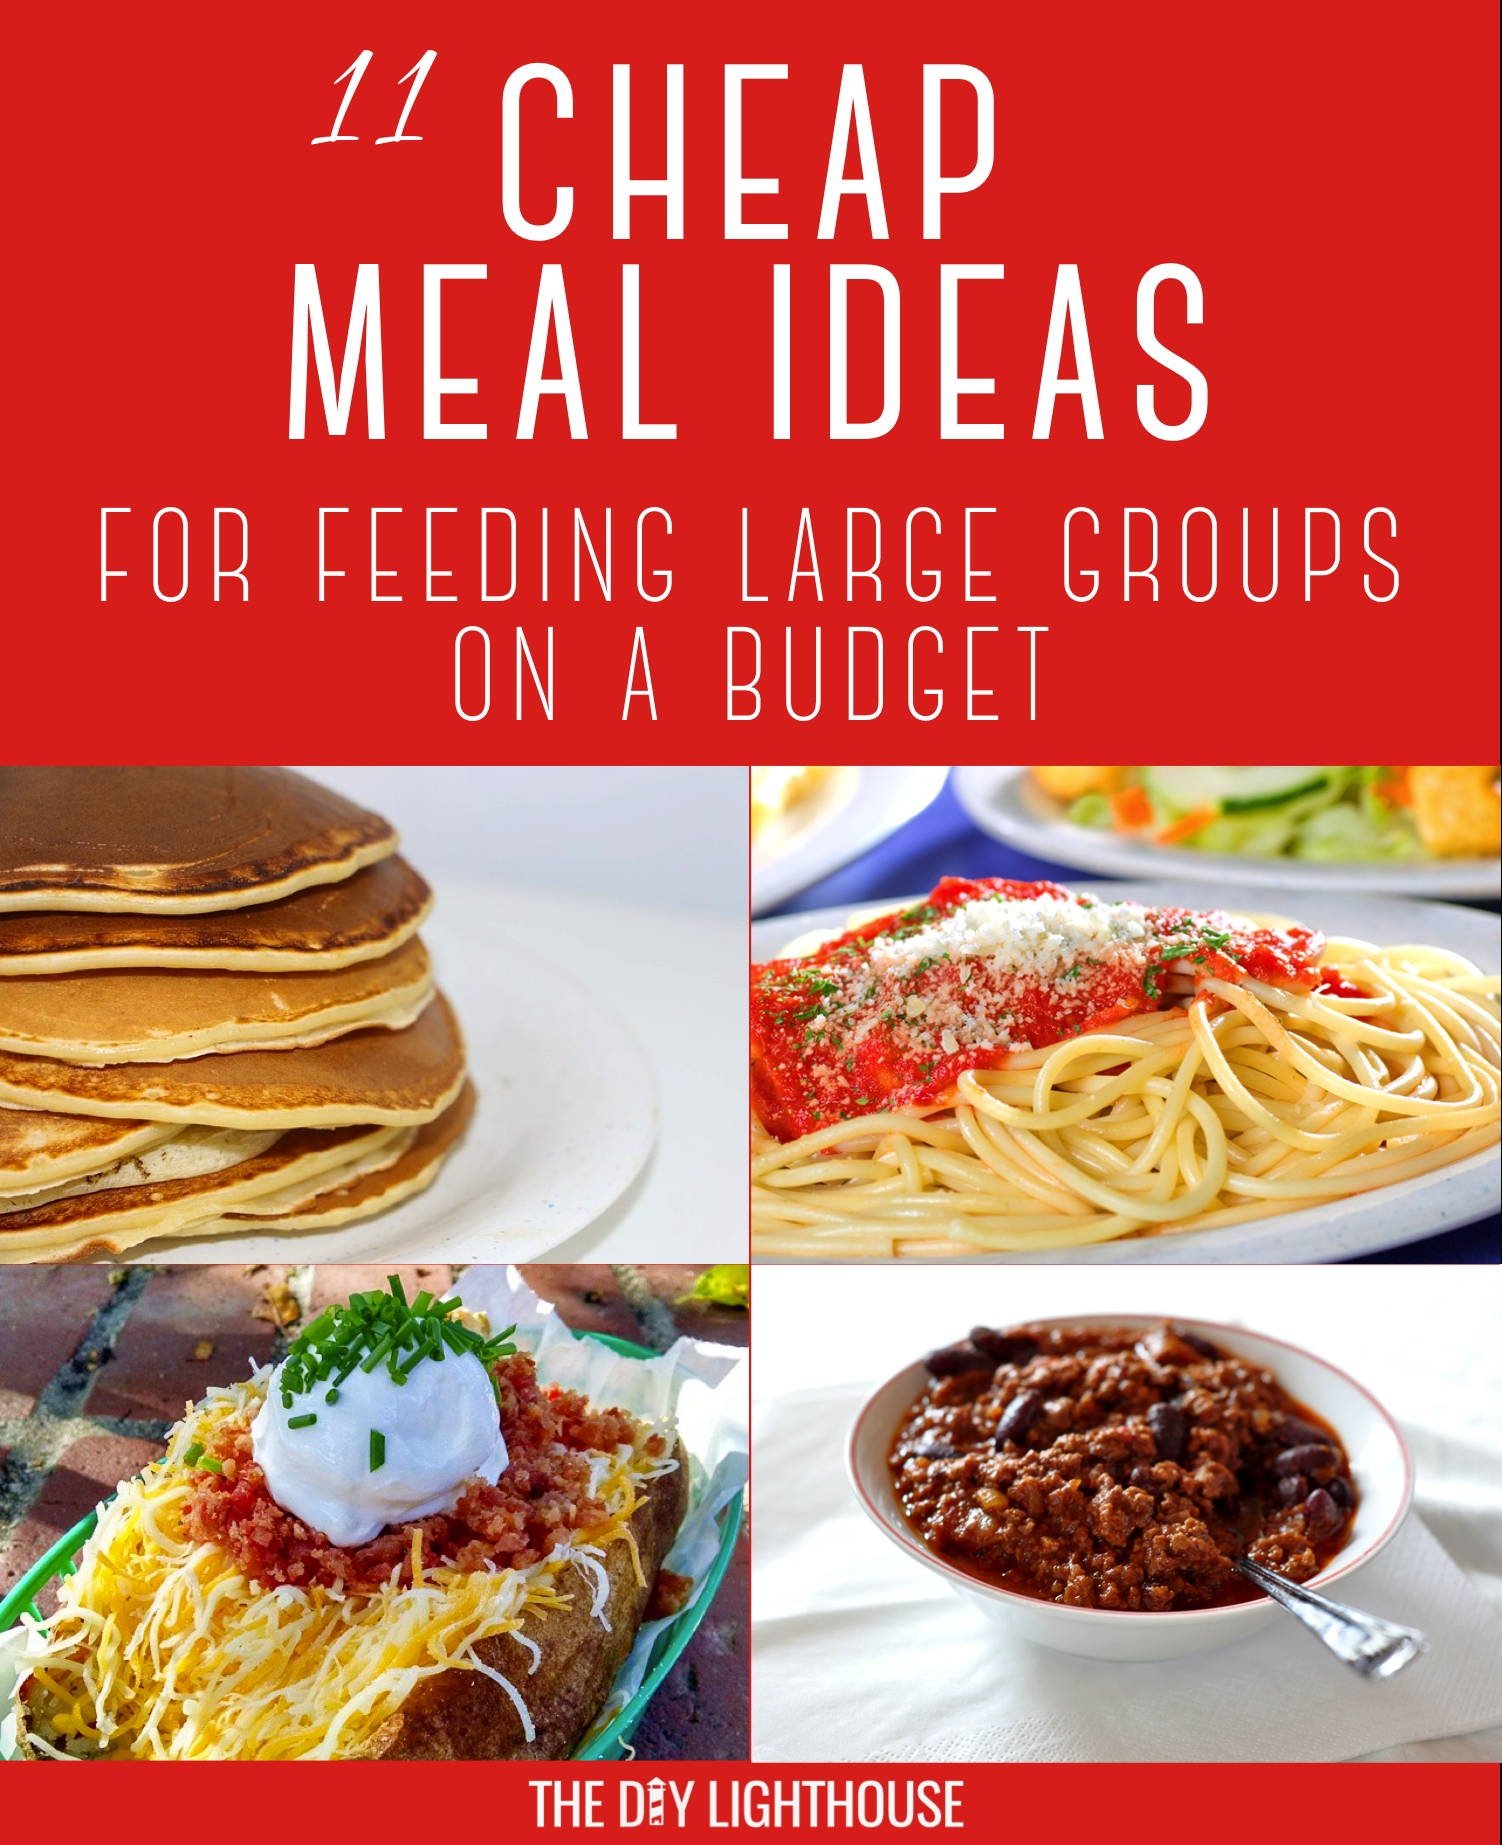 10 Best Cooking For A Crowd Ideas cheap meals for feeding large groups 1 2020